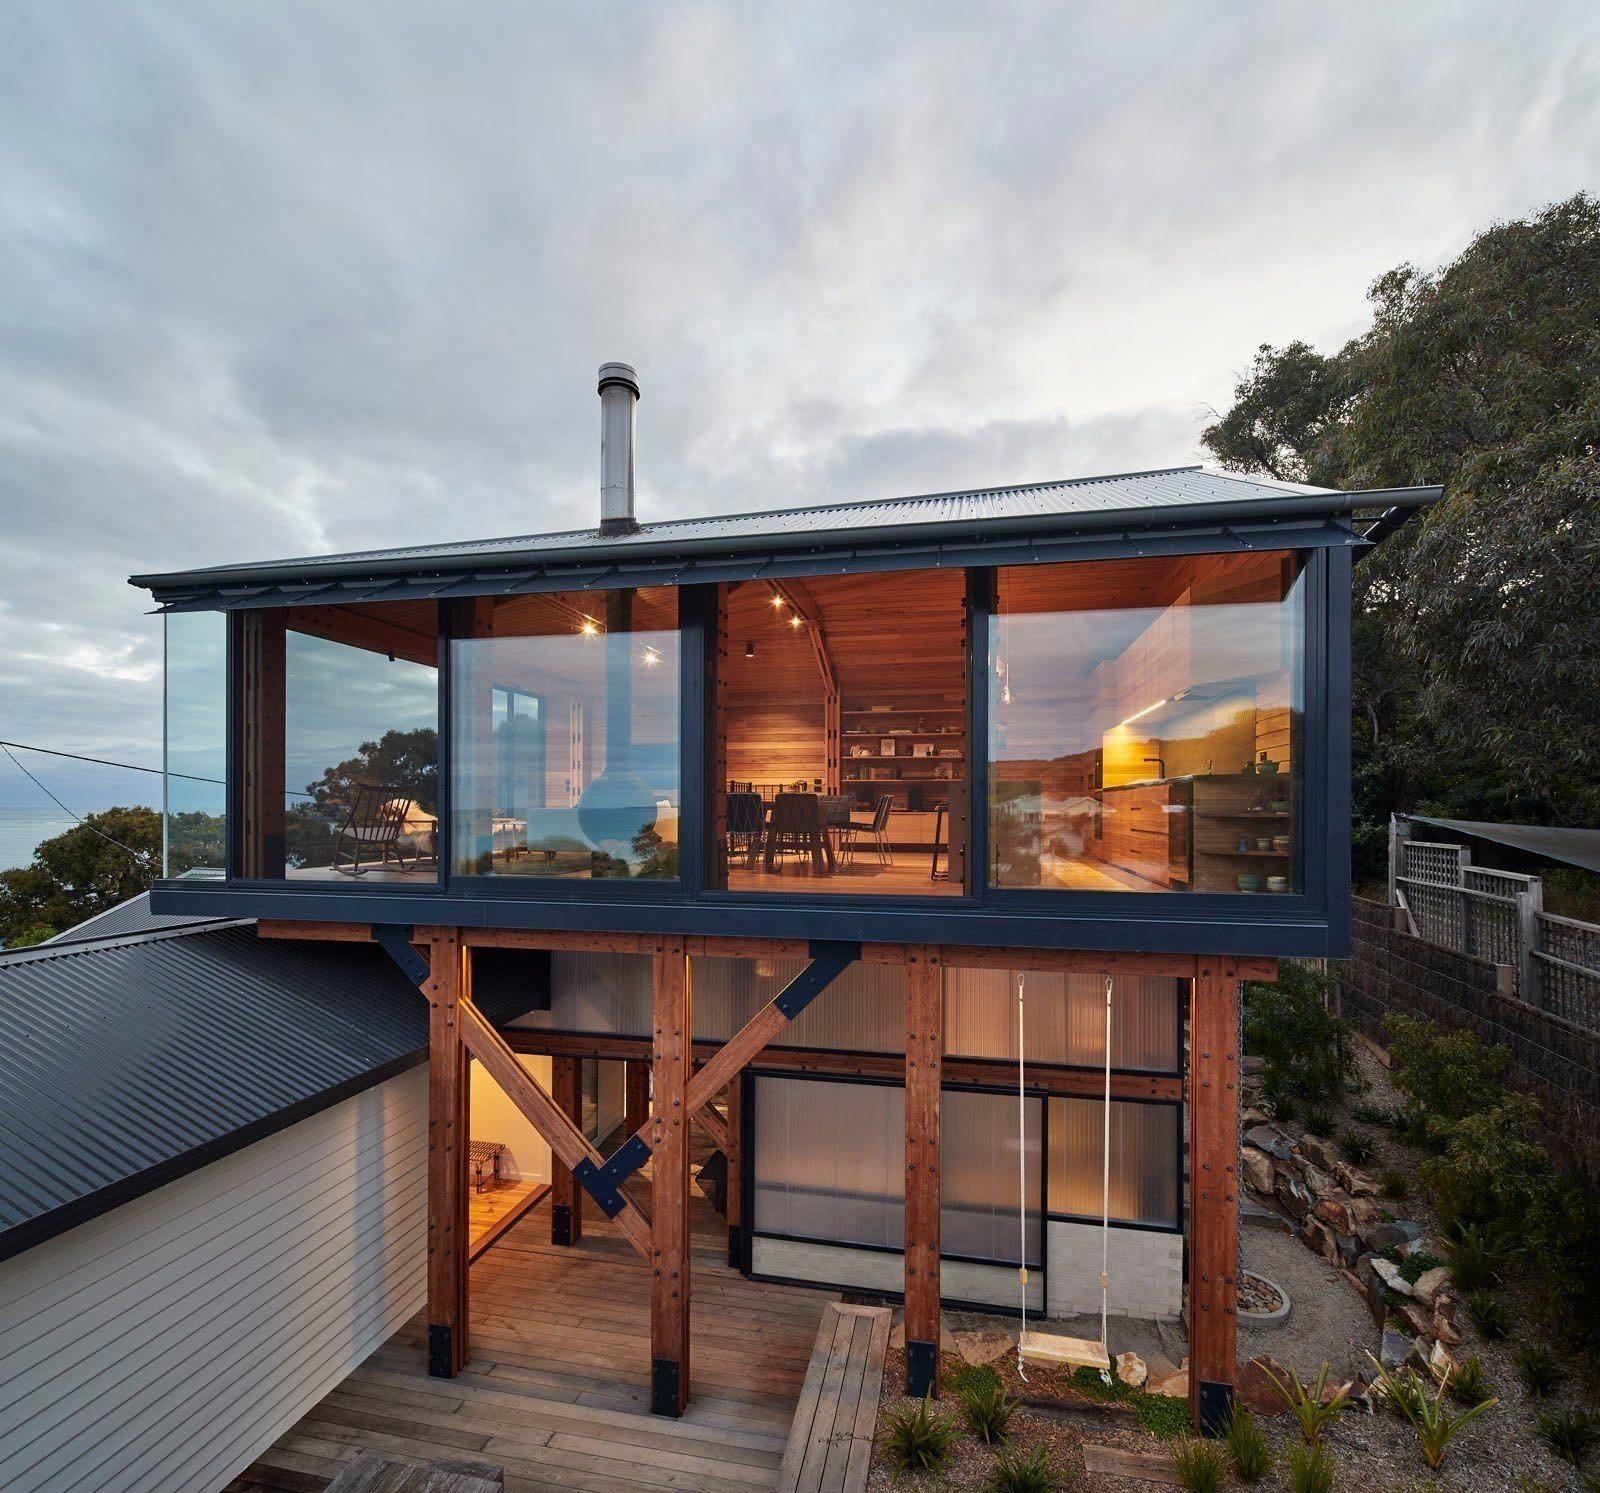 Photo 2 of 12 in A Great Ocean Road Shack With a View Gets a Sustainable Update